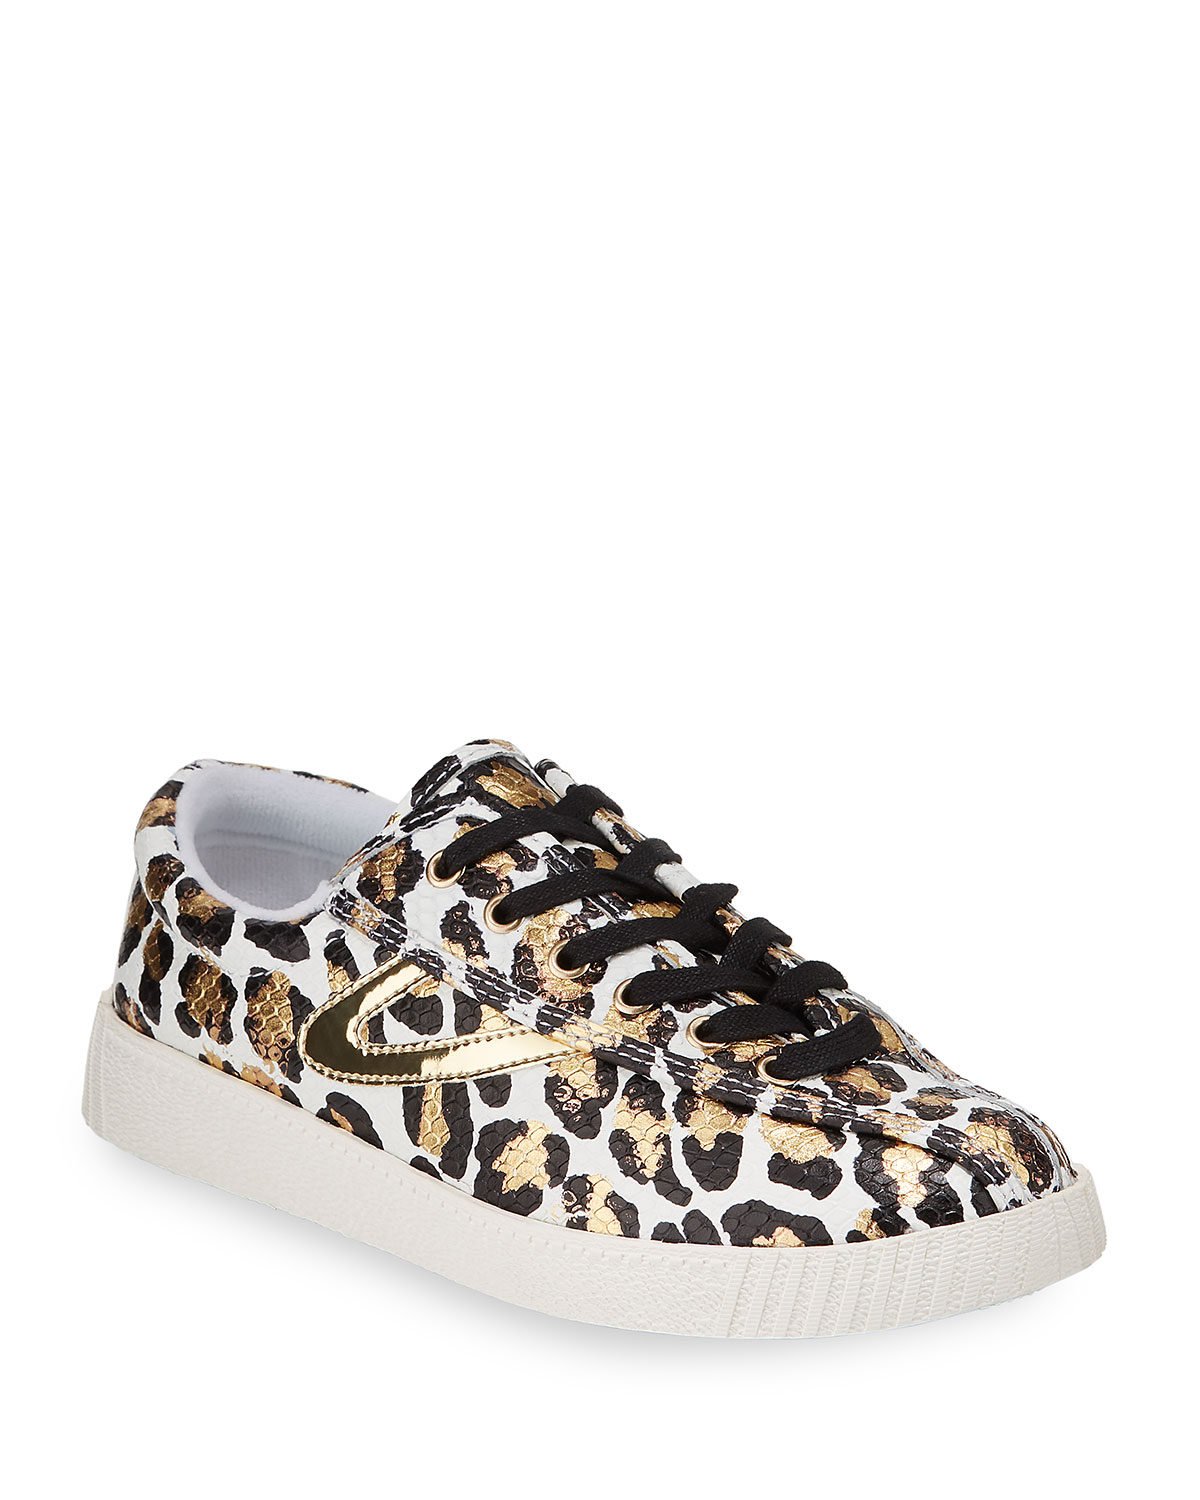 Tretorn Sneakers NYLITE 34 PLUS METALLIC ANIMAL-PRINT SNEAKERS